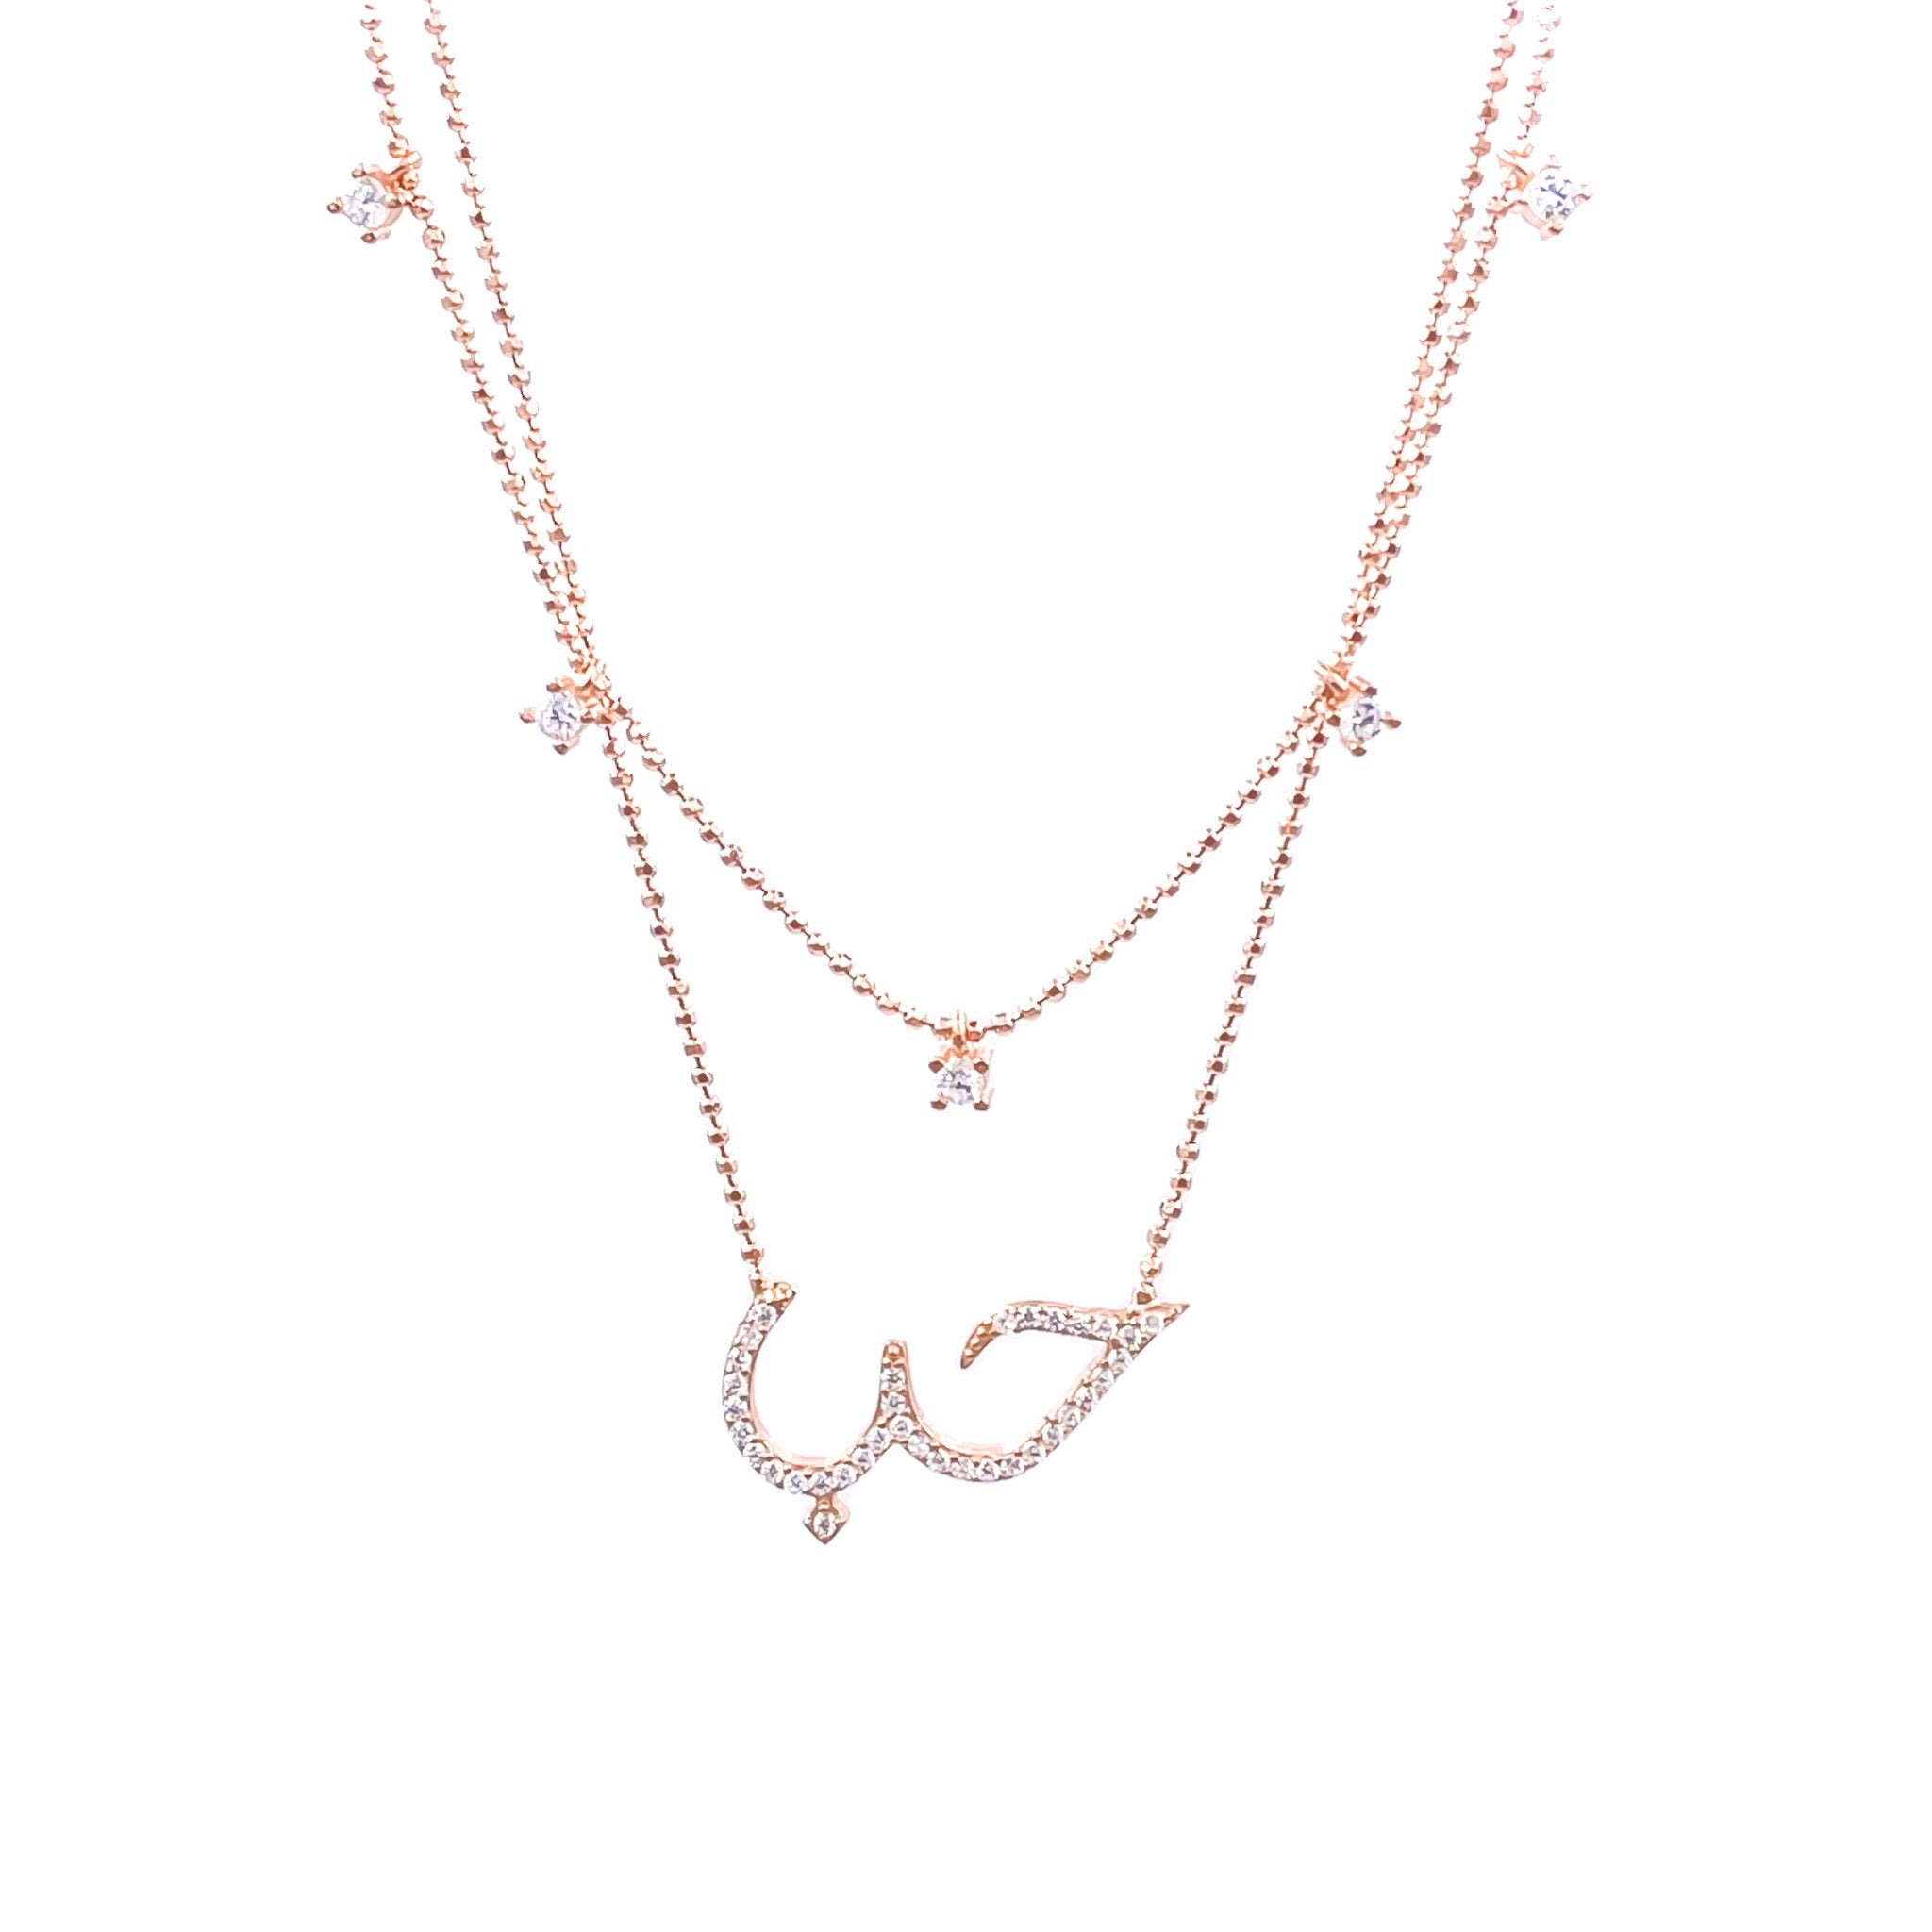 Double Strand Hope Necklace